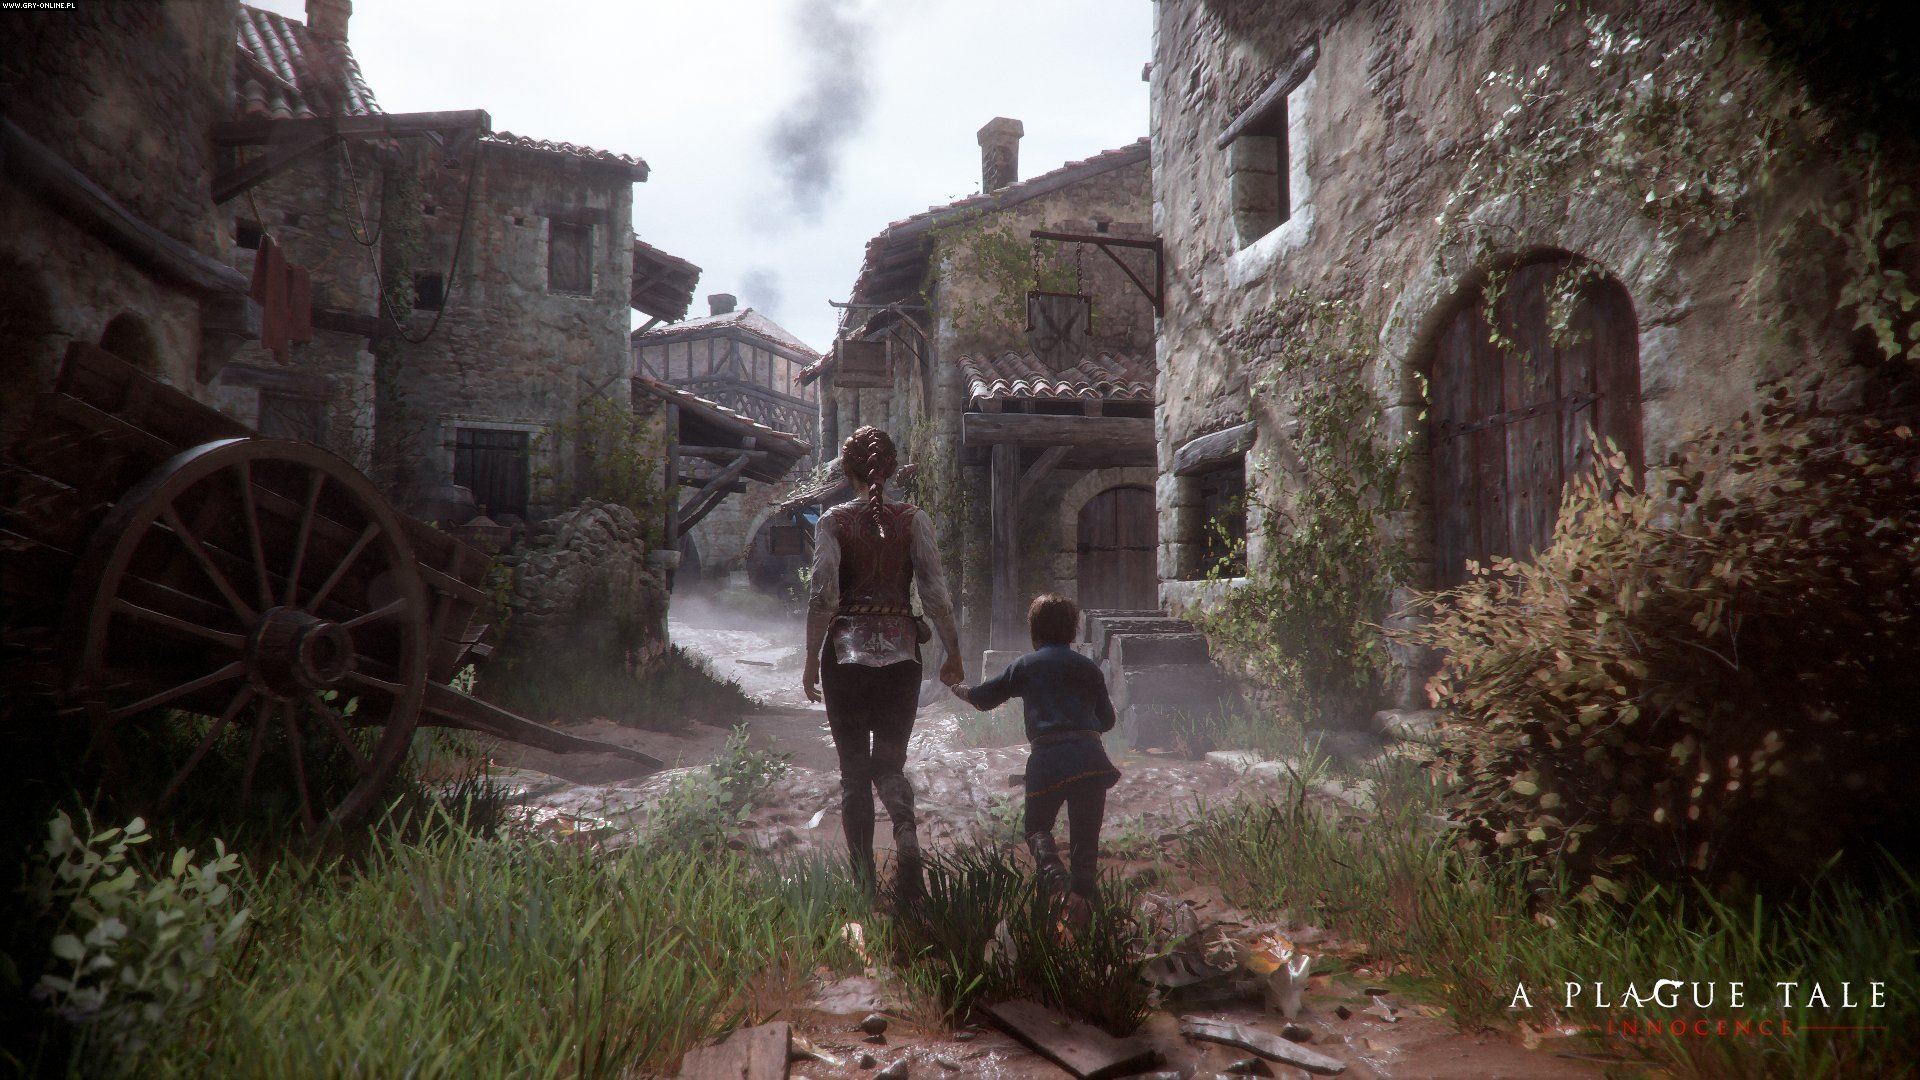 A Plague Tale: Innocence PC, PS4, XONE Games Image 17/30, Asobo Studio, Focus Home Interactive